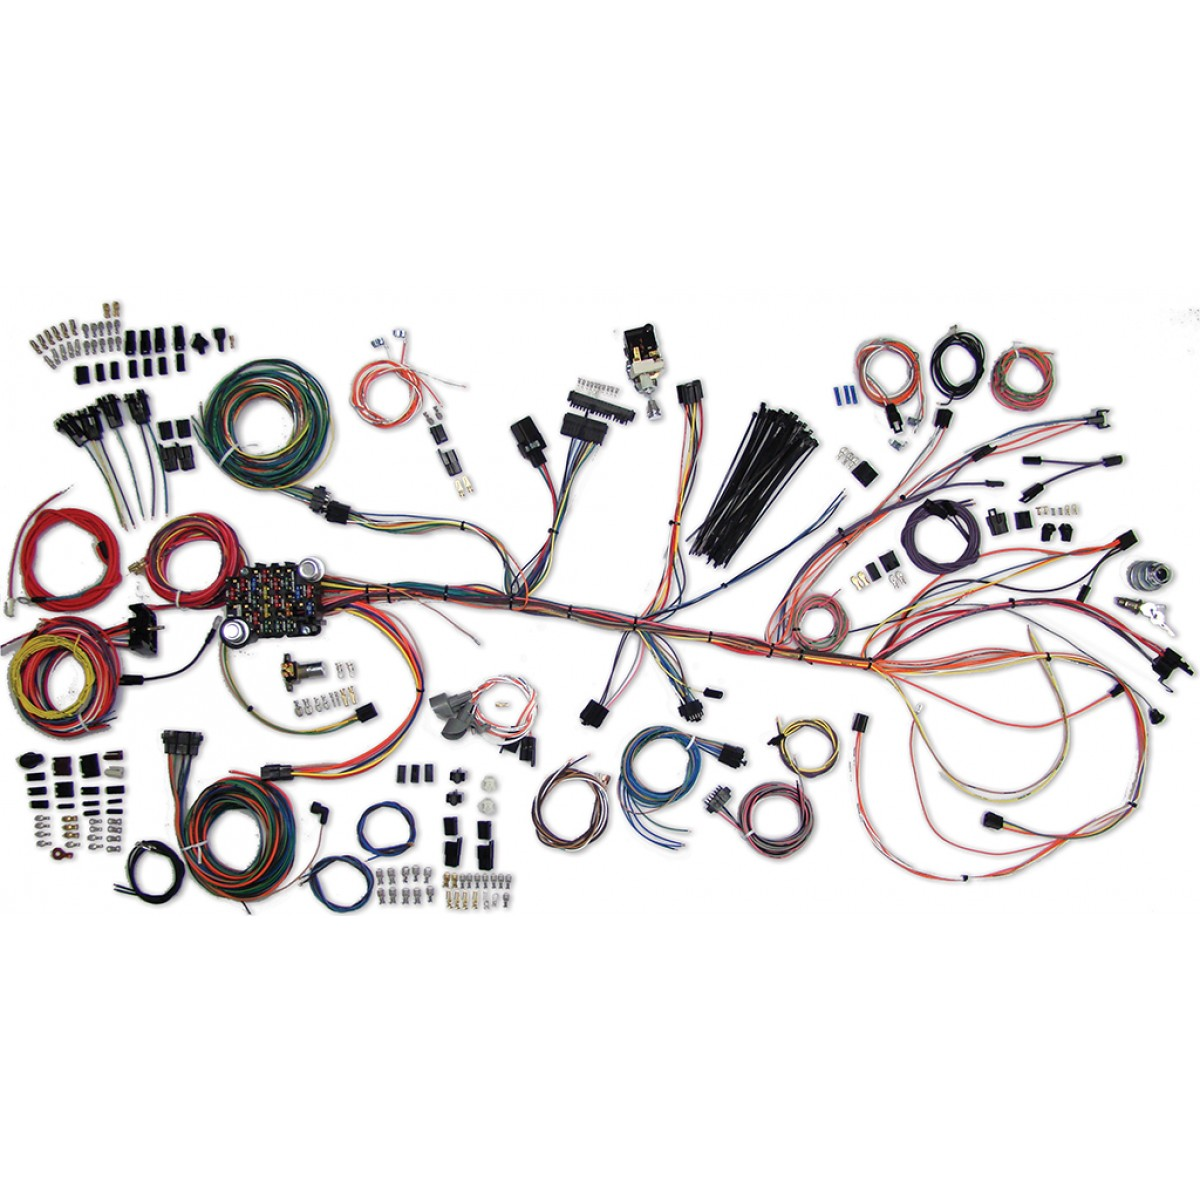 1964 1967 chevelle wiring harness kit chevelle wiring part complete wiring harness kit 1964 1967 chevelle part 500981 cheapraybanclubmaster Choice Image